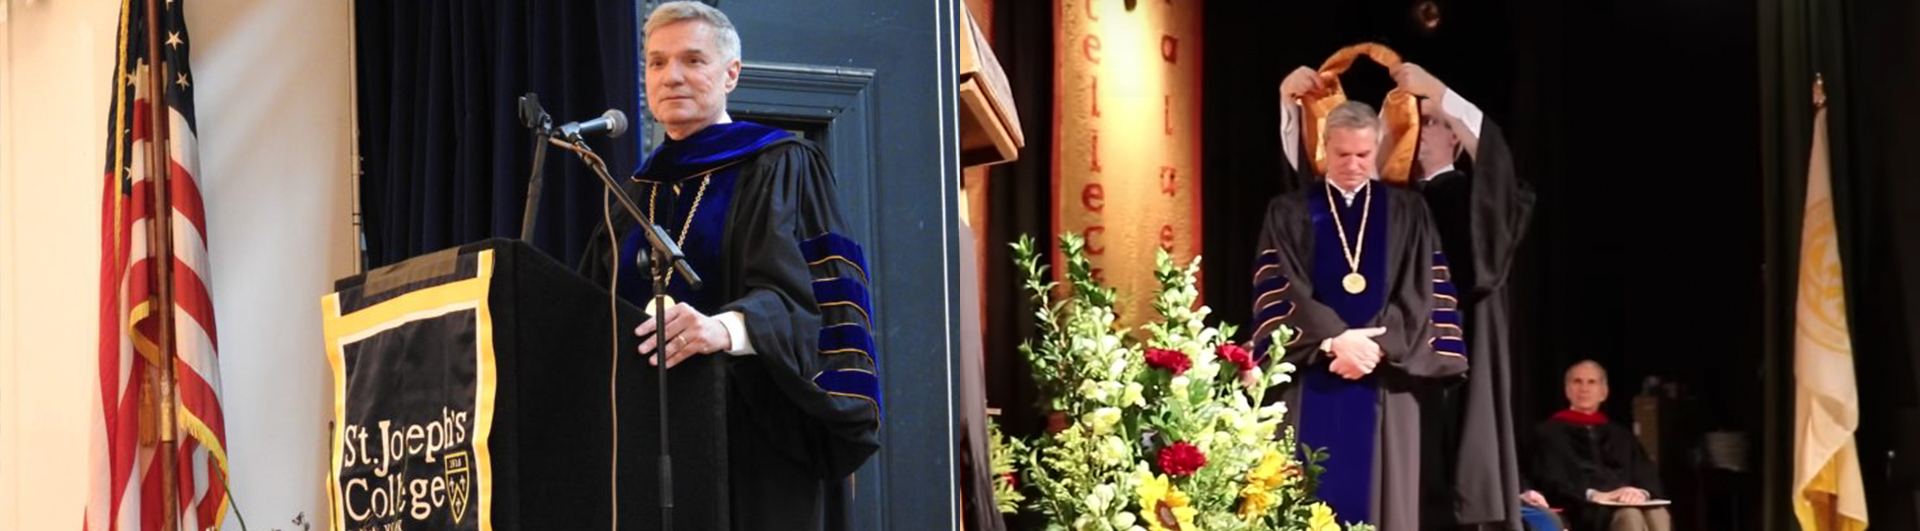 St. Joseph's President Donald R.Boomgaarden, Ph.D., being installed at SJC Long Island and SJC Brooklyn in March 2018.